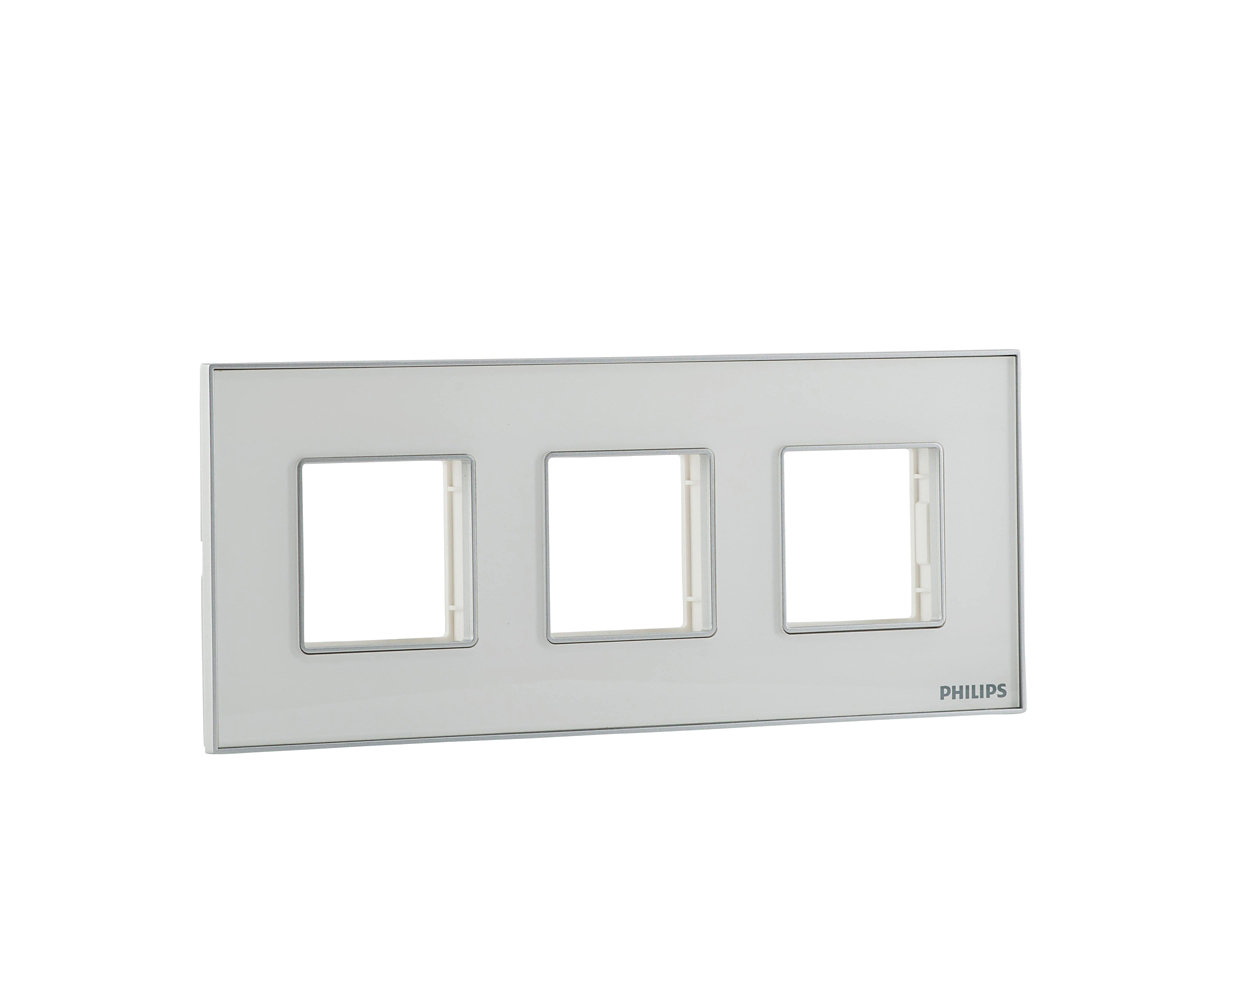 Reflect your style with Philips Mirror Glaze range